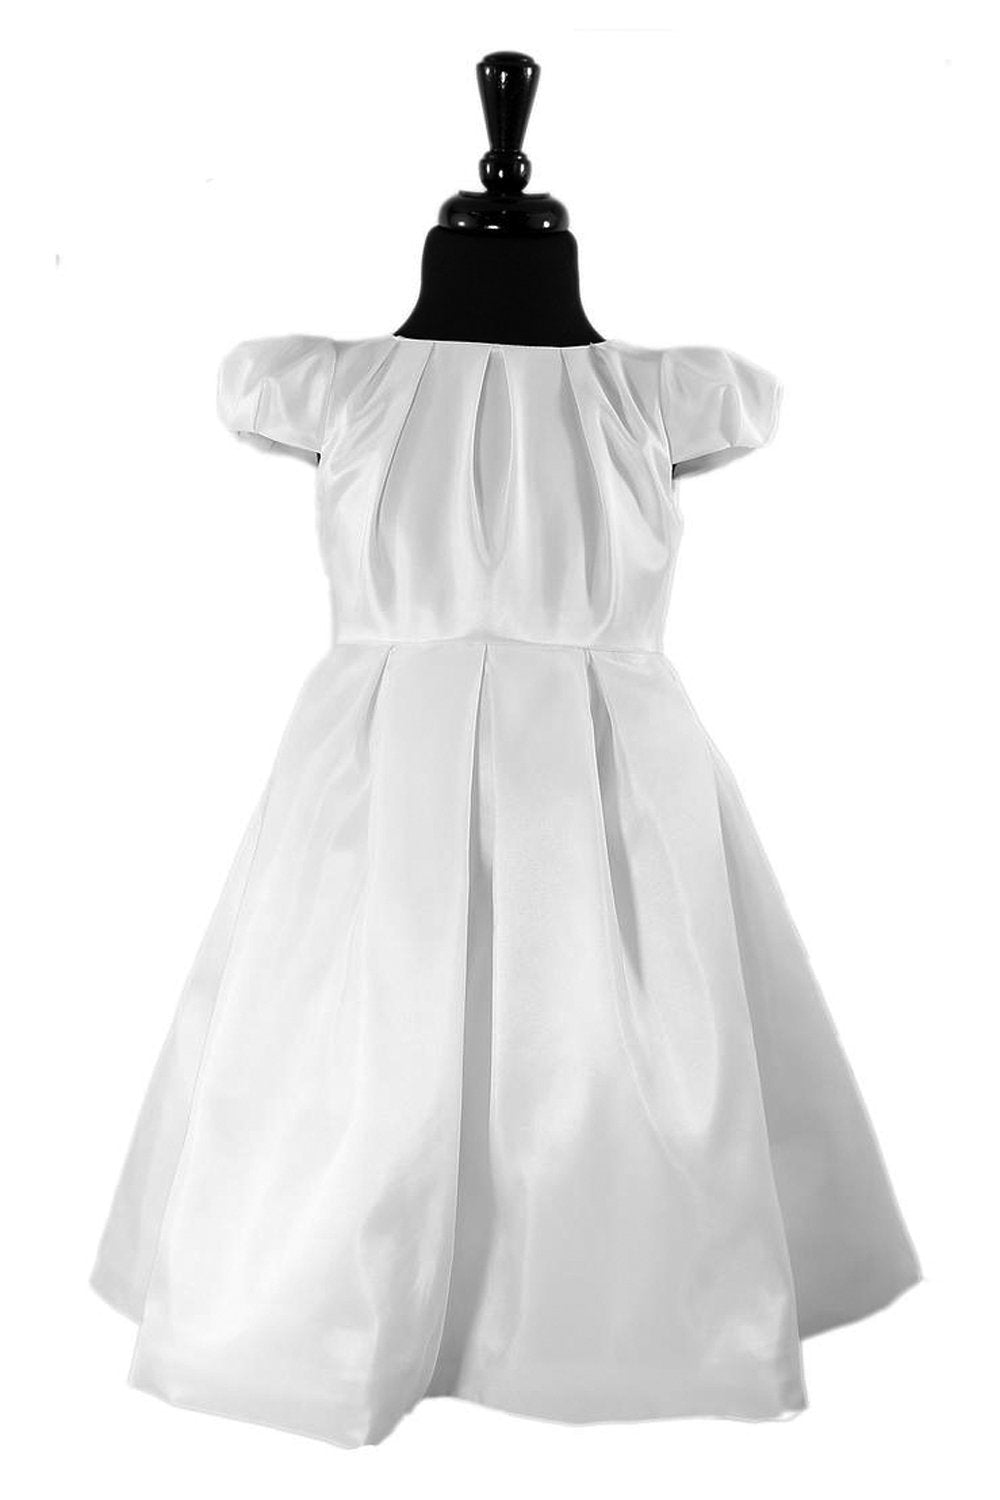 Lille Couture Chelsea Flower Girl First Communion Dress New Ebay